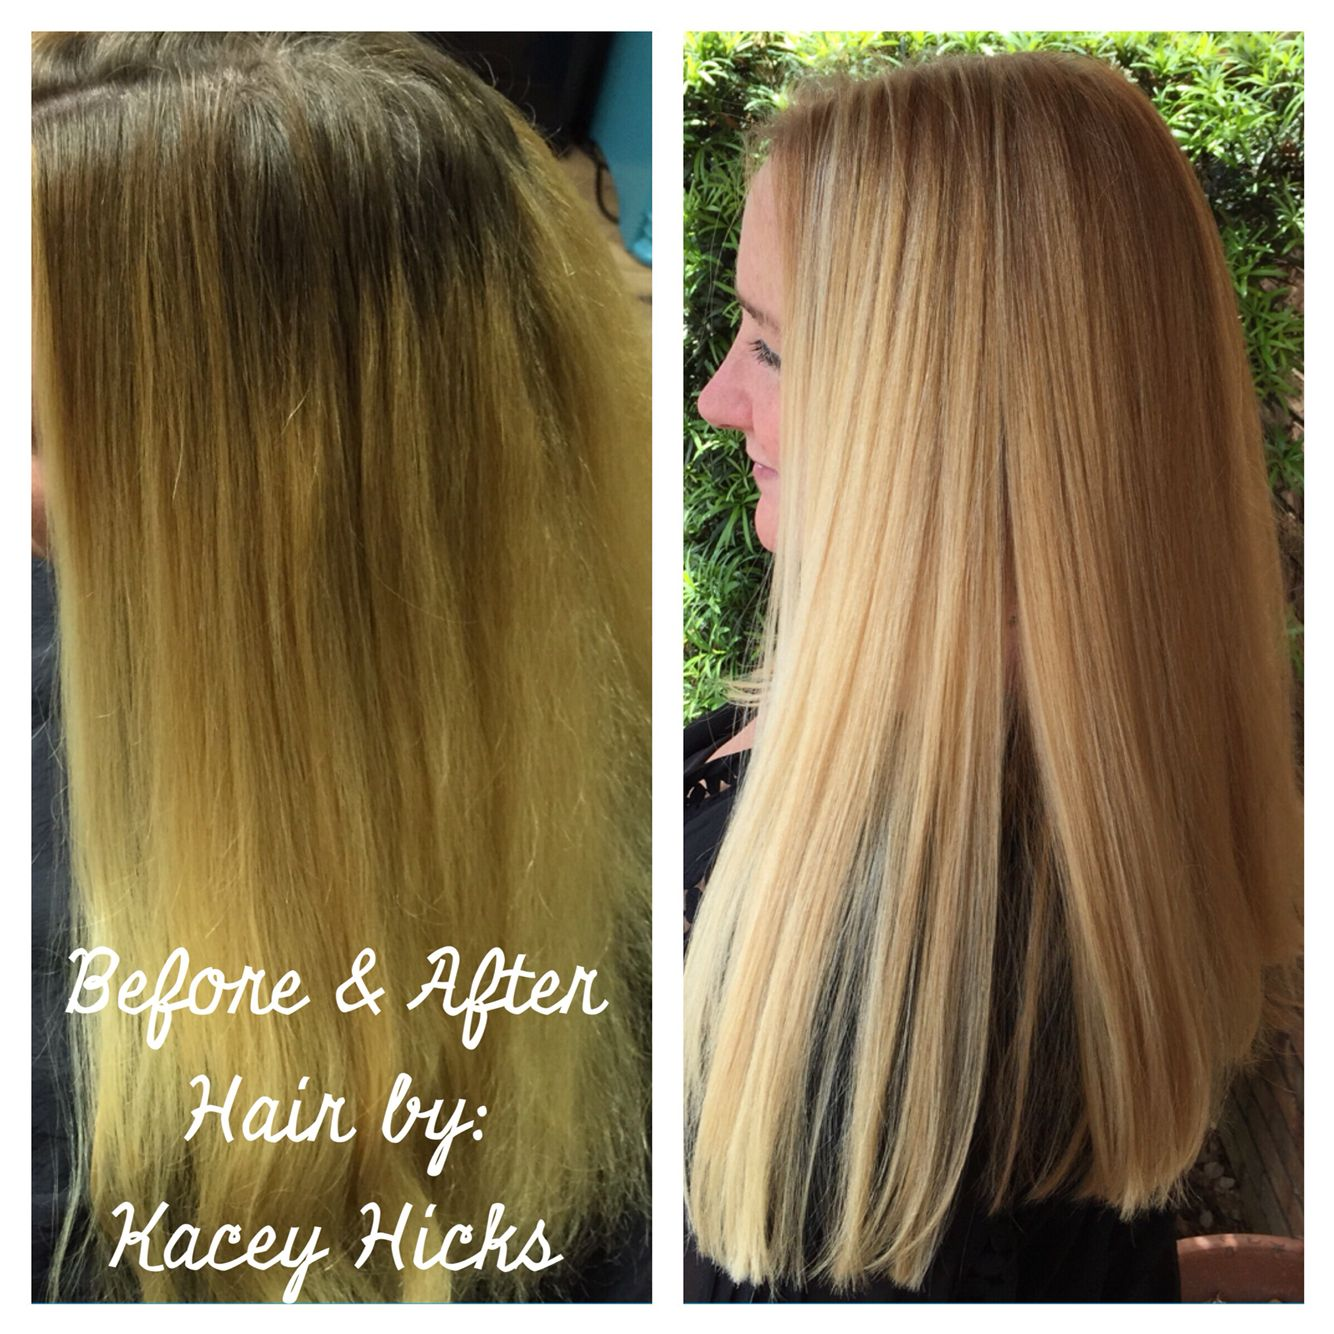 From at home box color to a salon service. #blonde #longhair ...